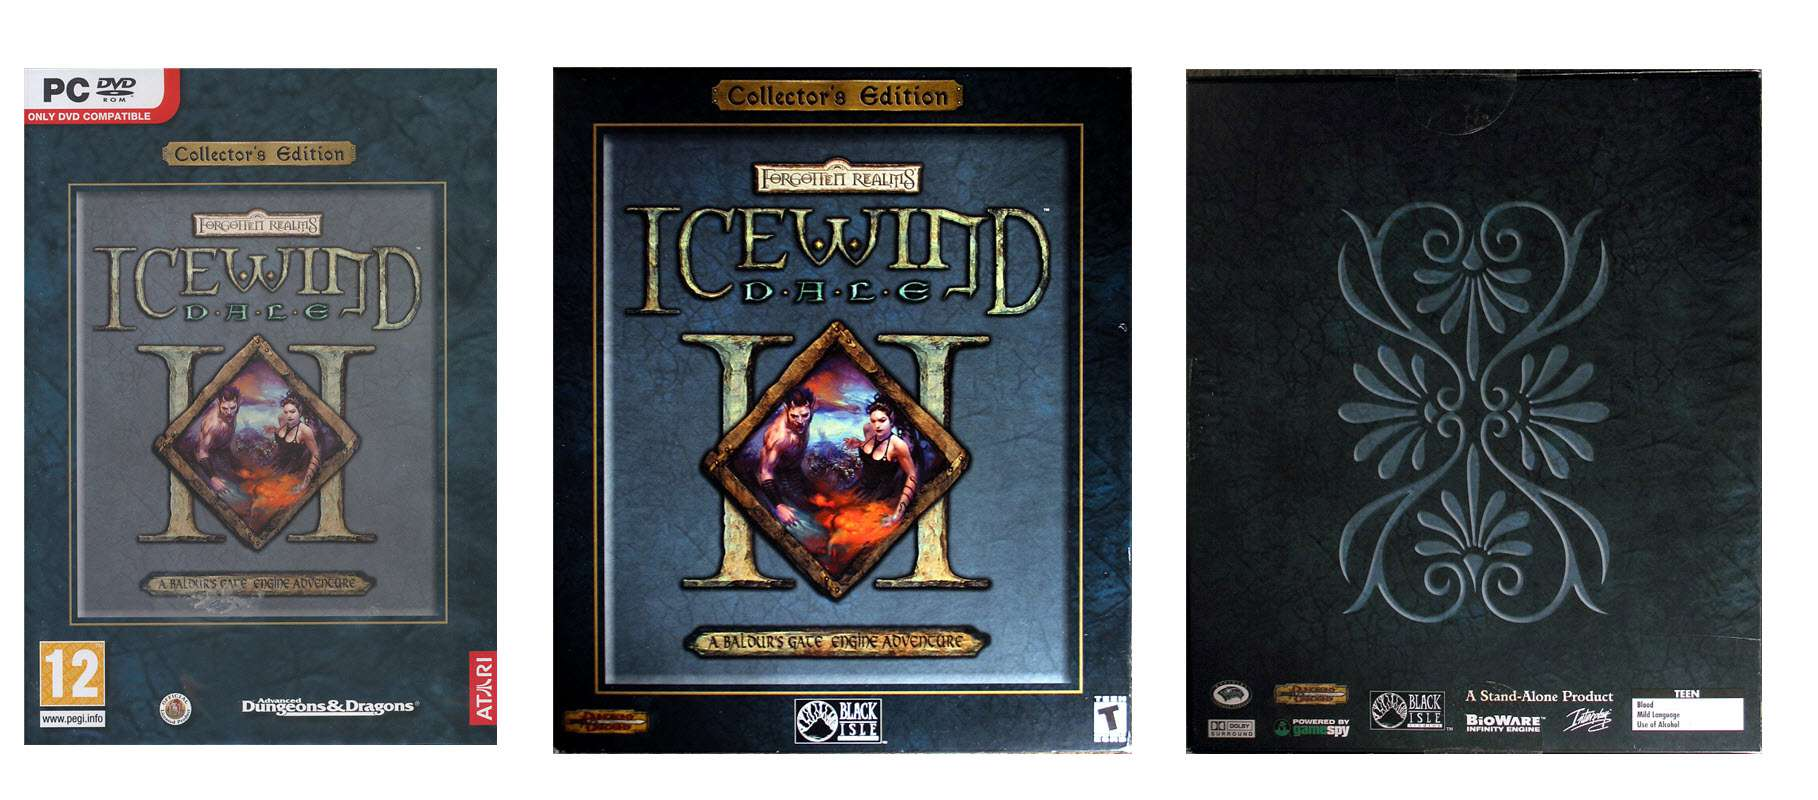 Icewind Dale II Collector's Edition - European Box and US Box (front & back)